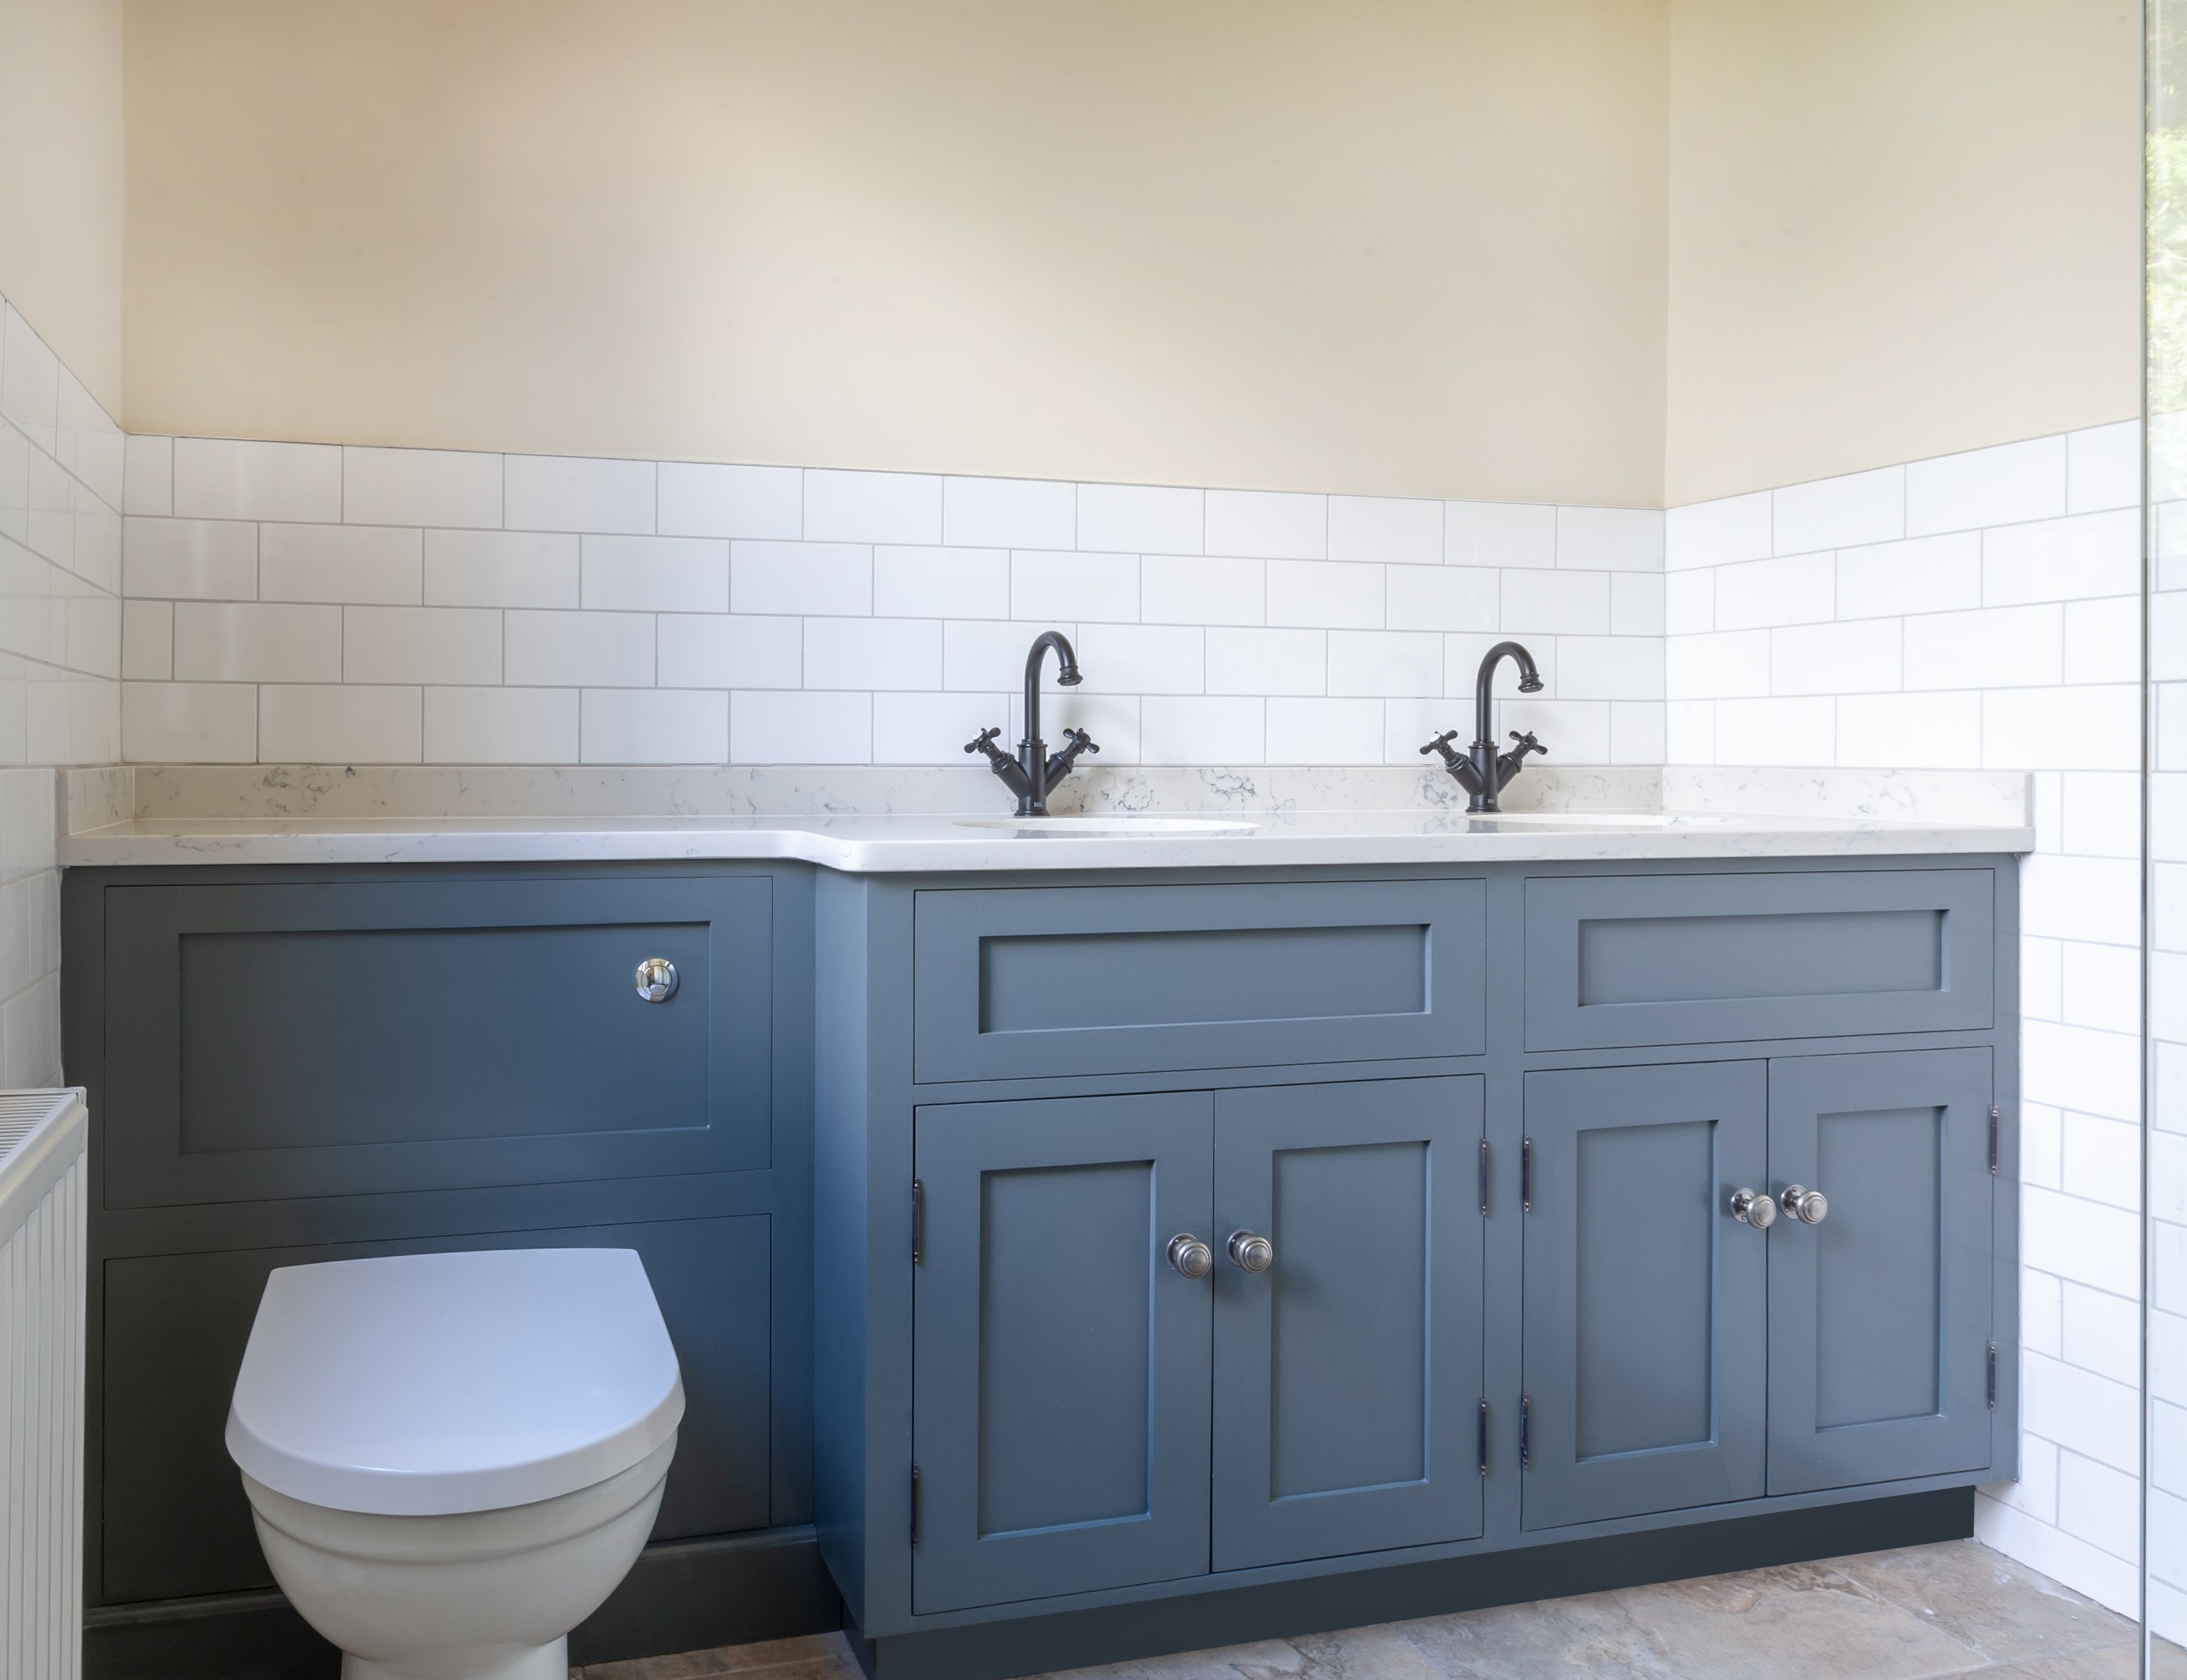 Bespoke Vanity Unit Featuring Back To Wall Toilet And Double Sinks With Marble Tops Sink Vanity Unit Back To Wall Toilets Toilet Vanity Unit